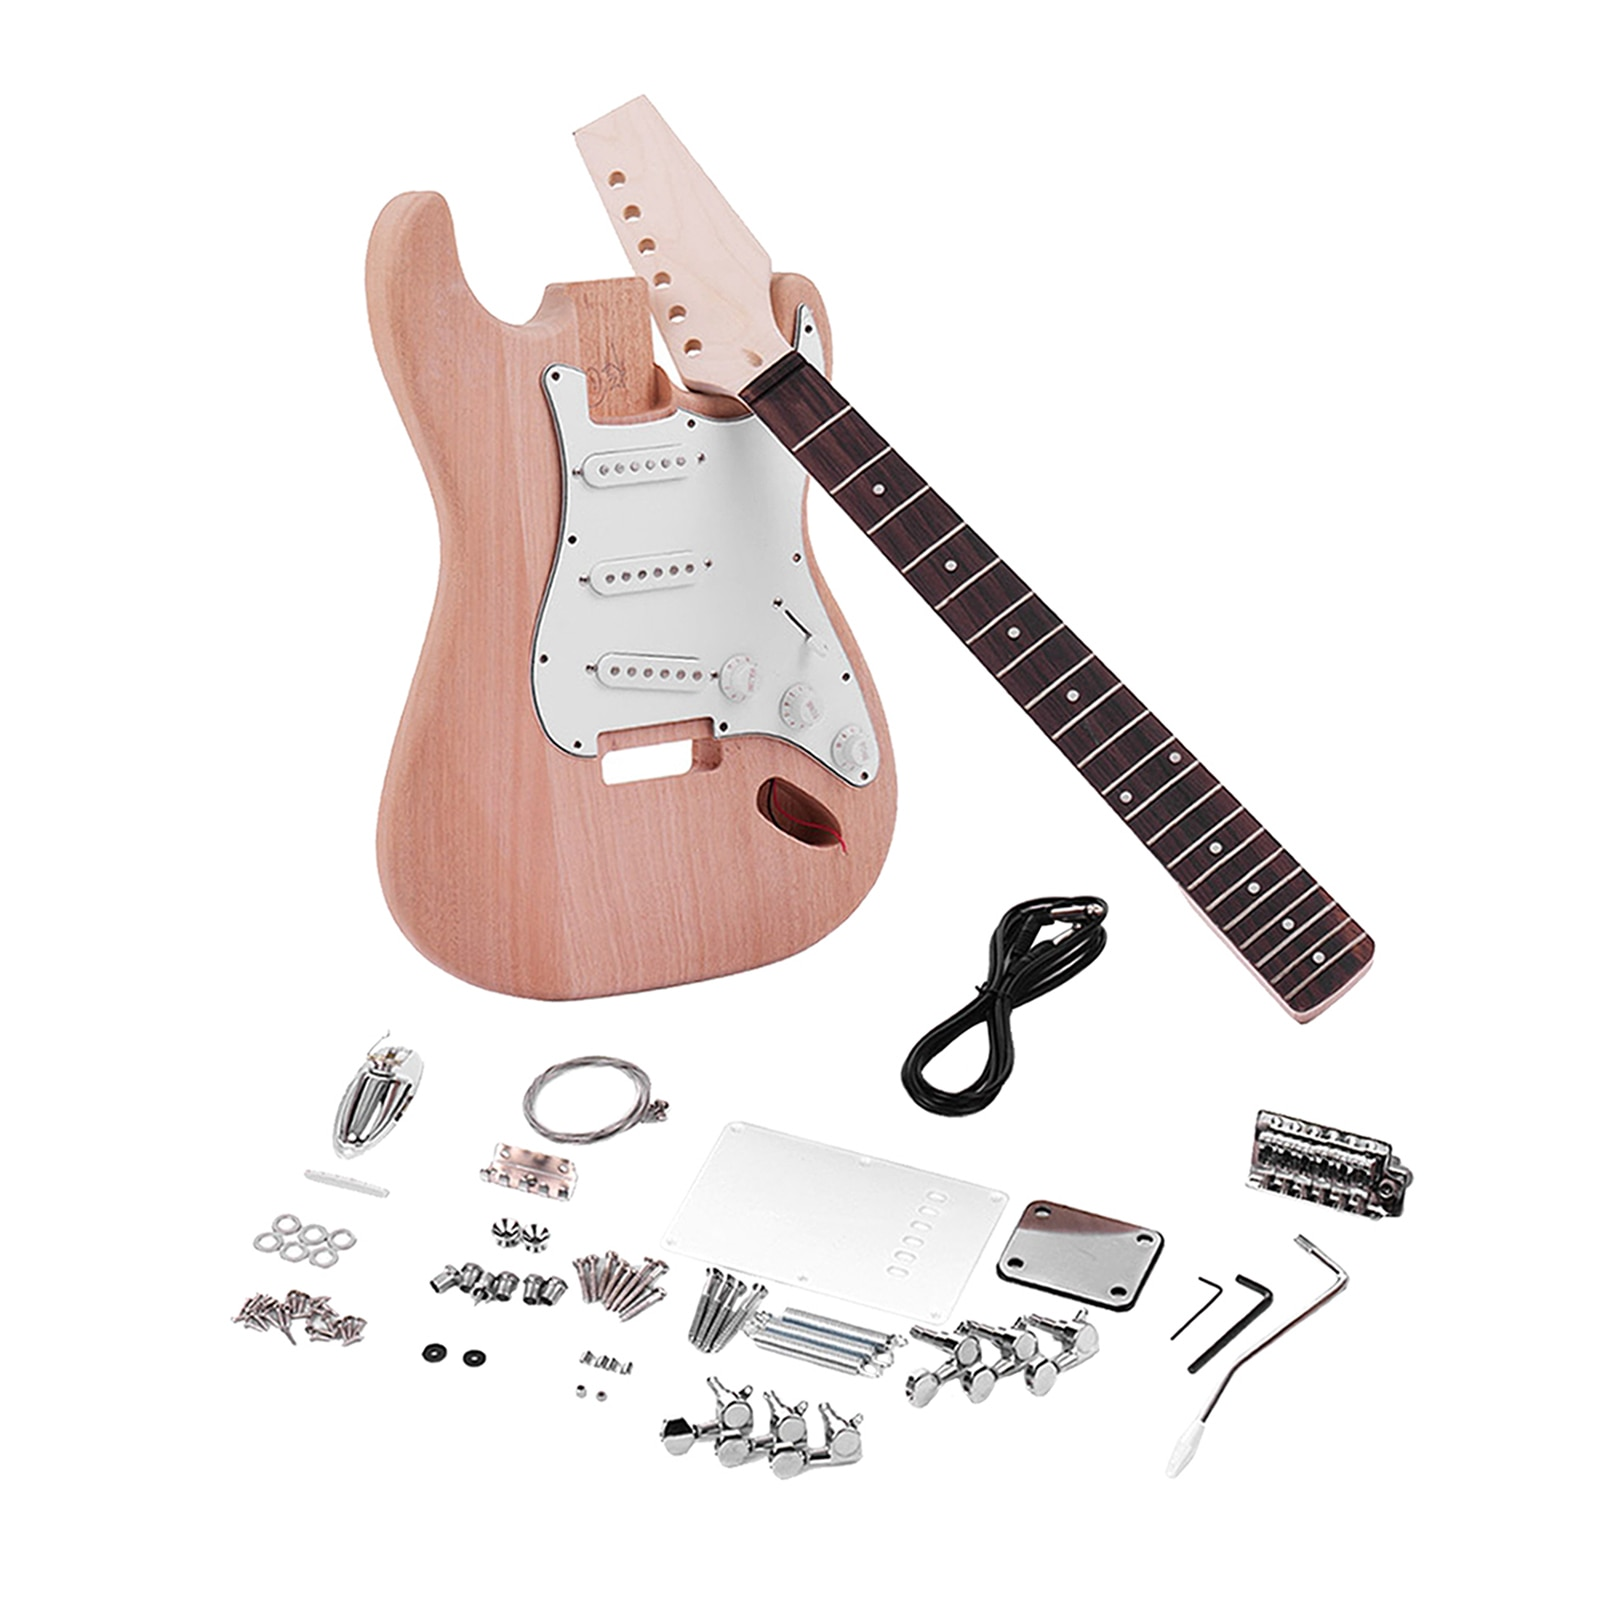 Unfinished DIY Electric Guitar Kit Mahogany Wooden Replacements Parts for ST Style Guitar Lovers Gift enlarge